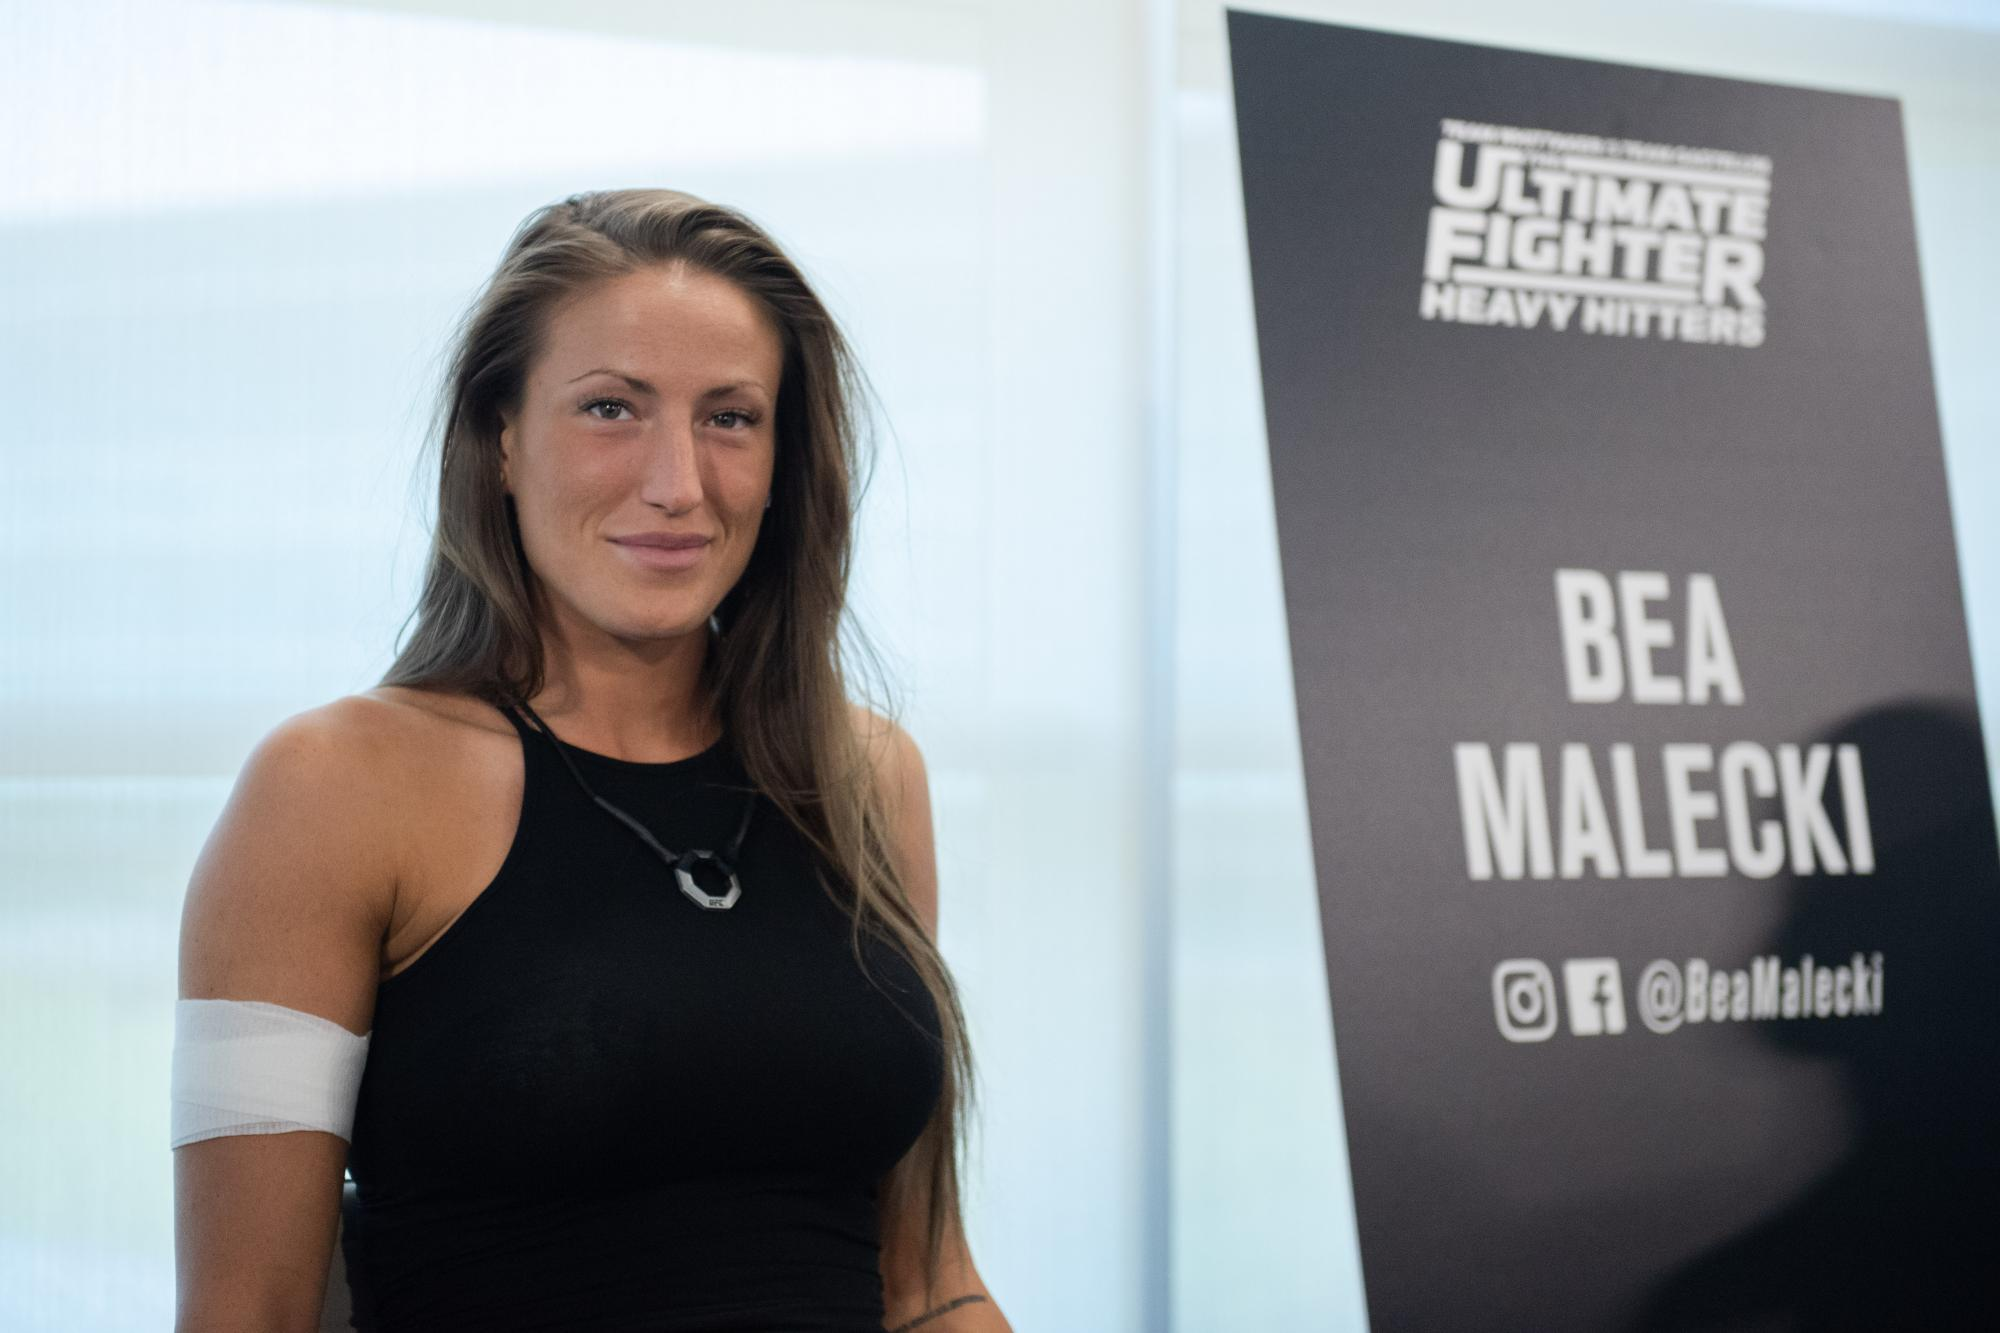 Bea malecki feels lucky in her debut ufc - Background image of div ...